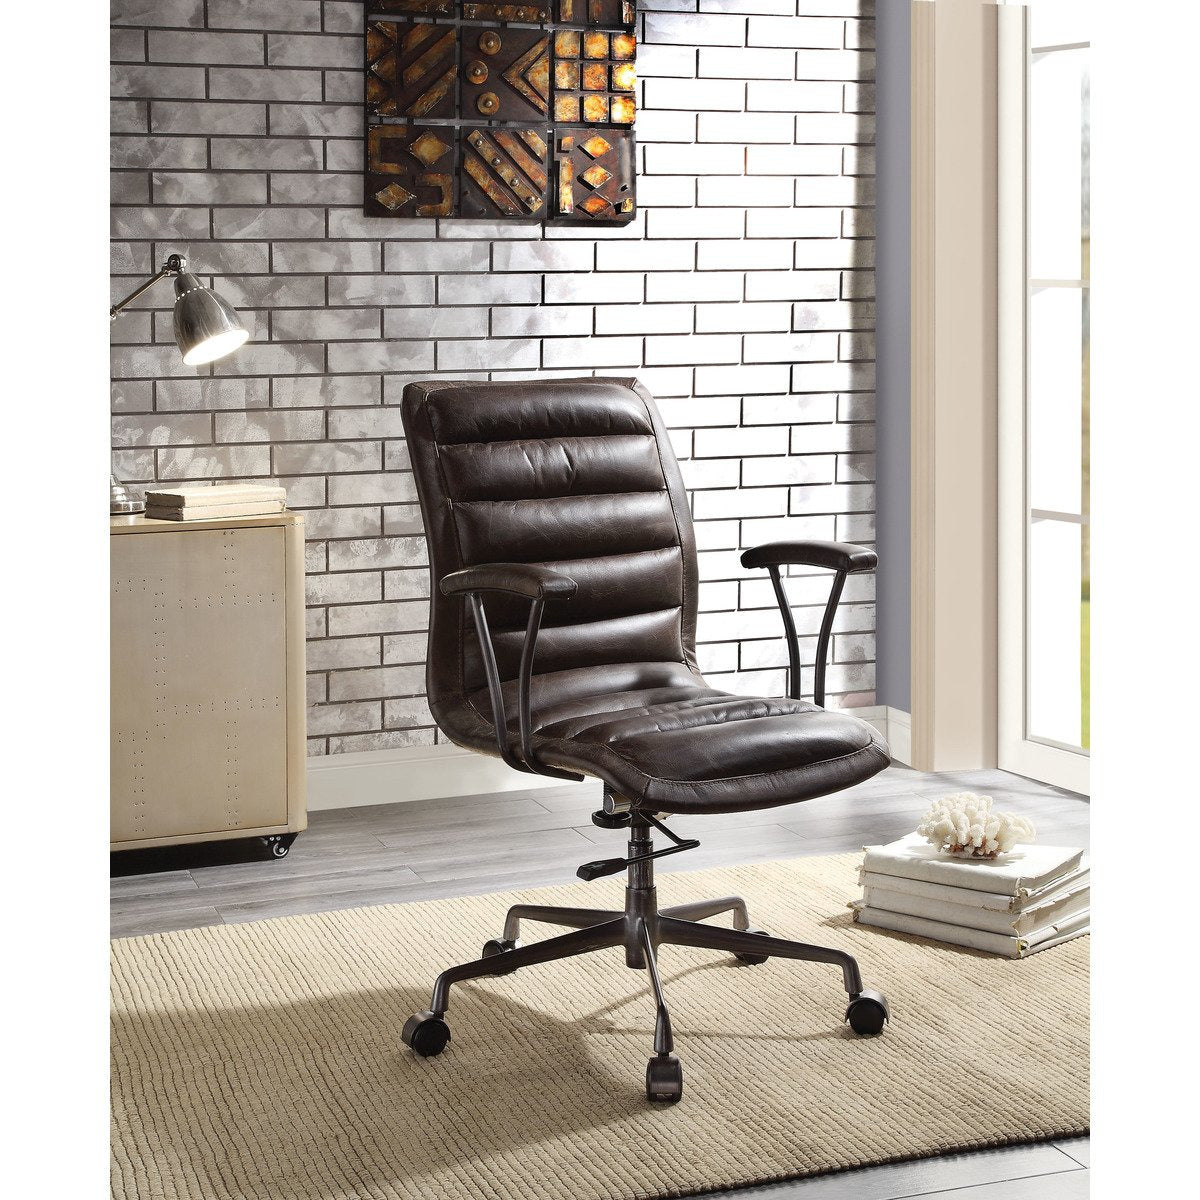 Office Chairs - Tufted Leatherette Office Chair With Adjustable Metal Base And Padded Armrest, Brown And Gray